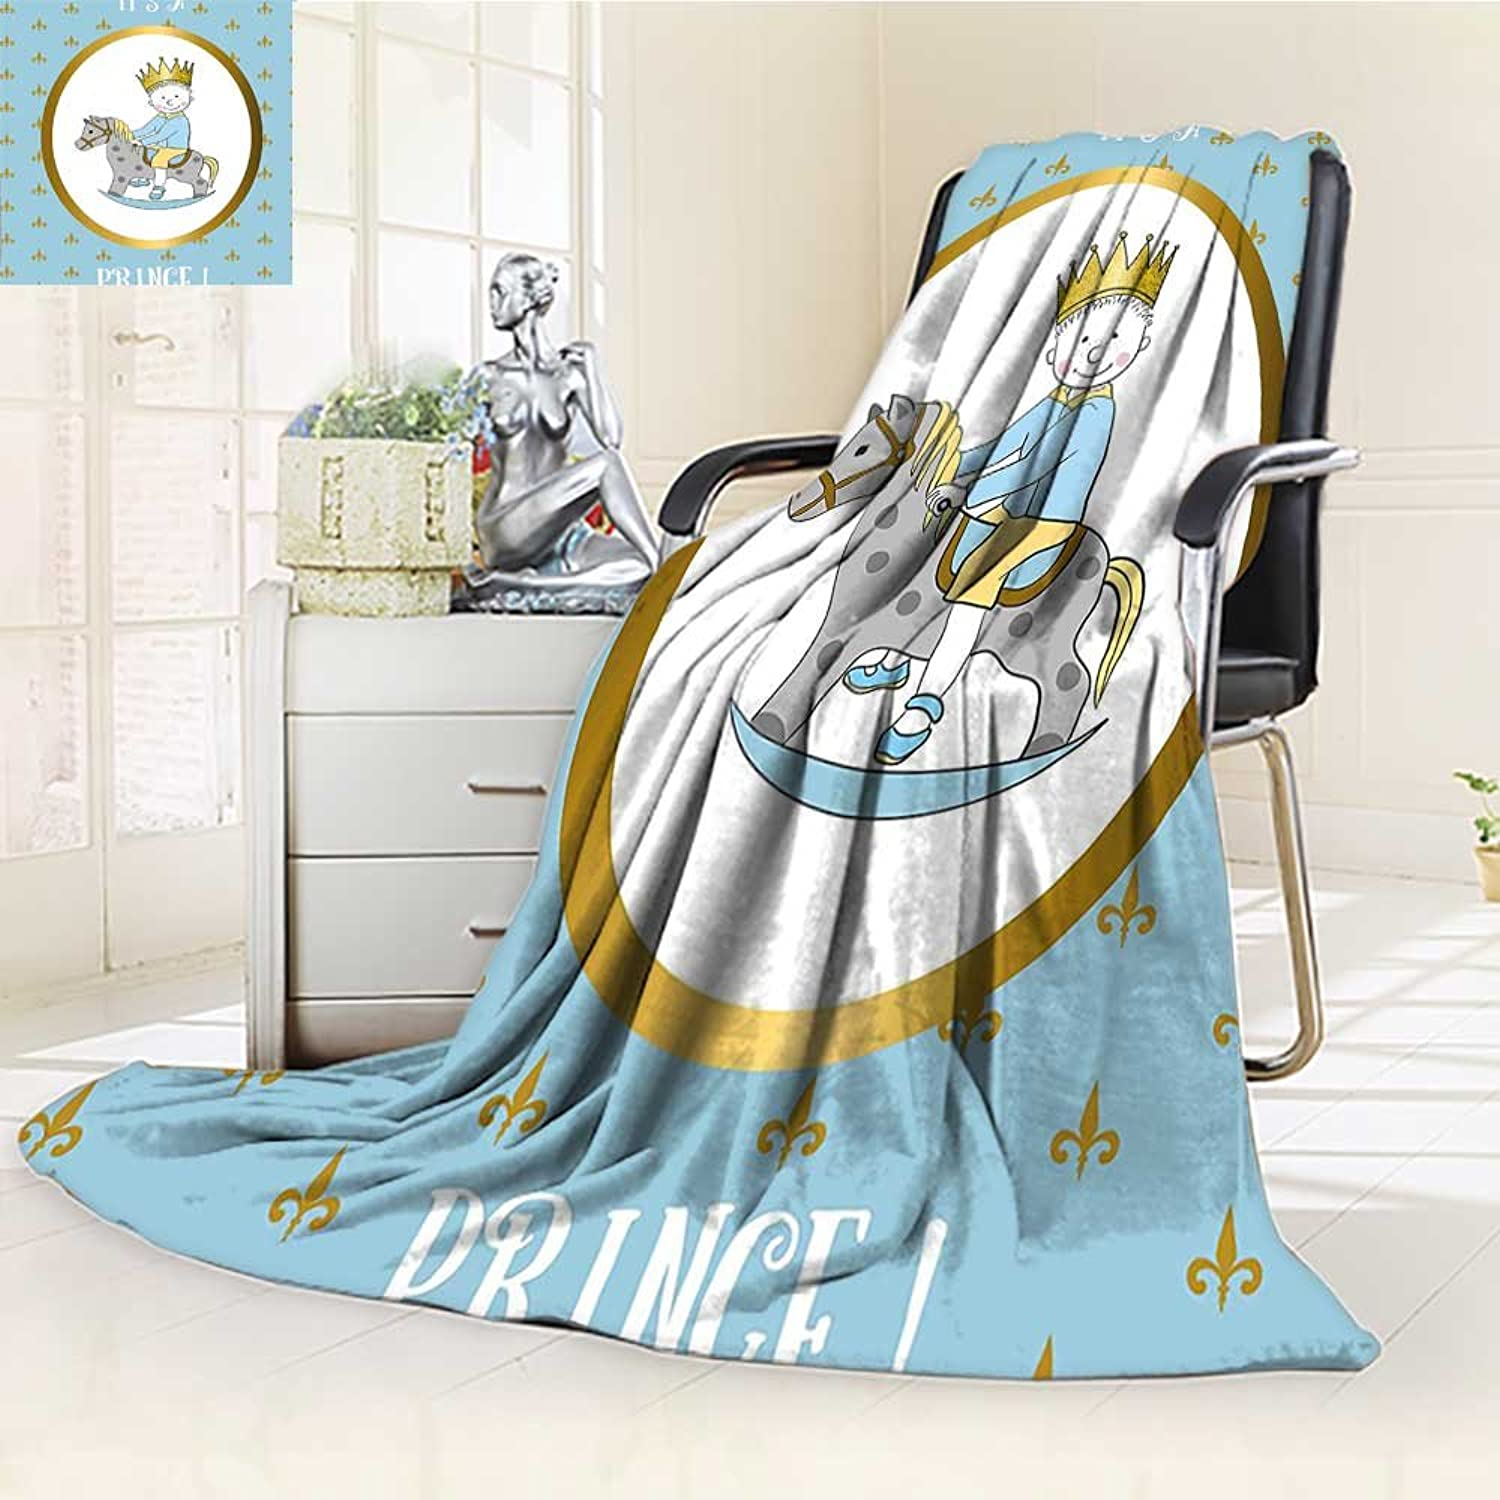 YOYI-HOME Soft Warm Cozy Throw Duplex Printed Blanket Its A Prince Quote with Newborn Boy Riding Horse Damask gold Light bluee Anti-Static,2 Ply Thick,Hypoallergenic W39.5  x H59